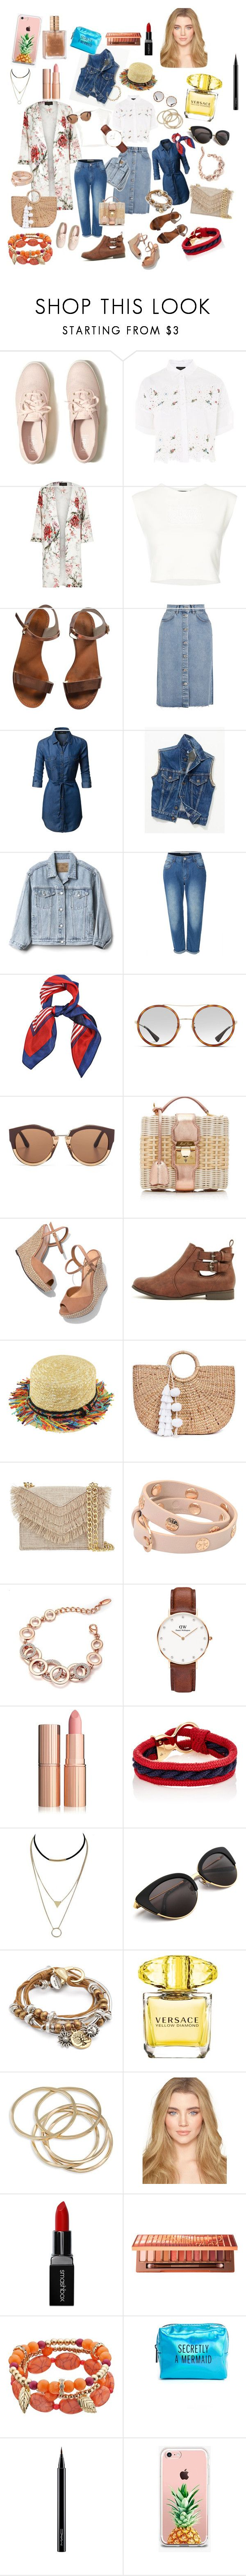 """""""Untitled #2"""" by svetlana-maiorova ❤ liked on Polyvore featuring Hollister Co., Topshop, River Island, Puma, Emporio Armani, M.i.h Jeans, LE3NO, Free People, Gap and Gucci"""